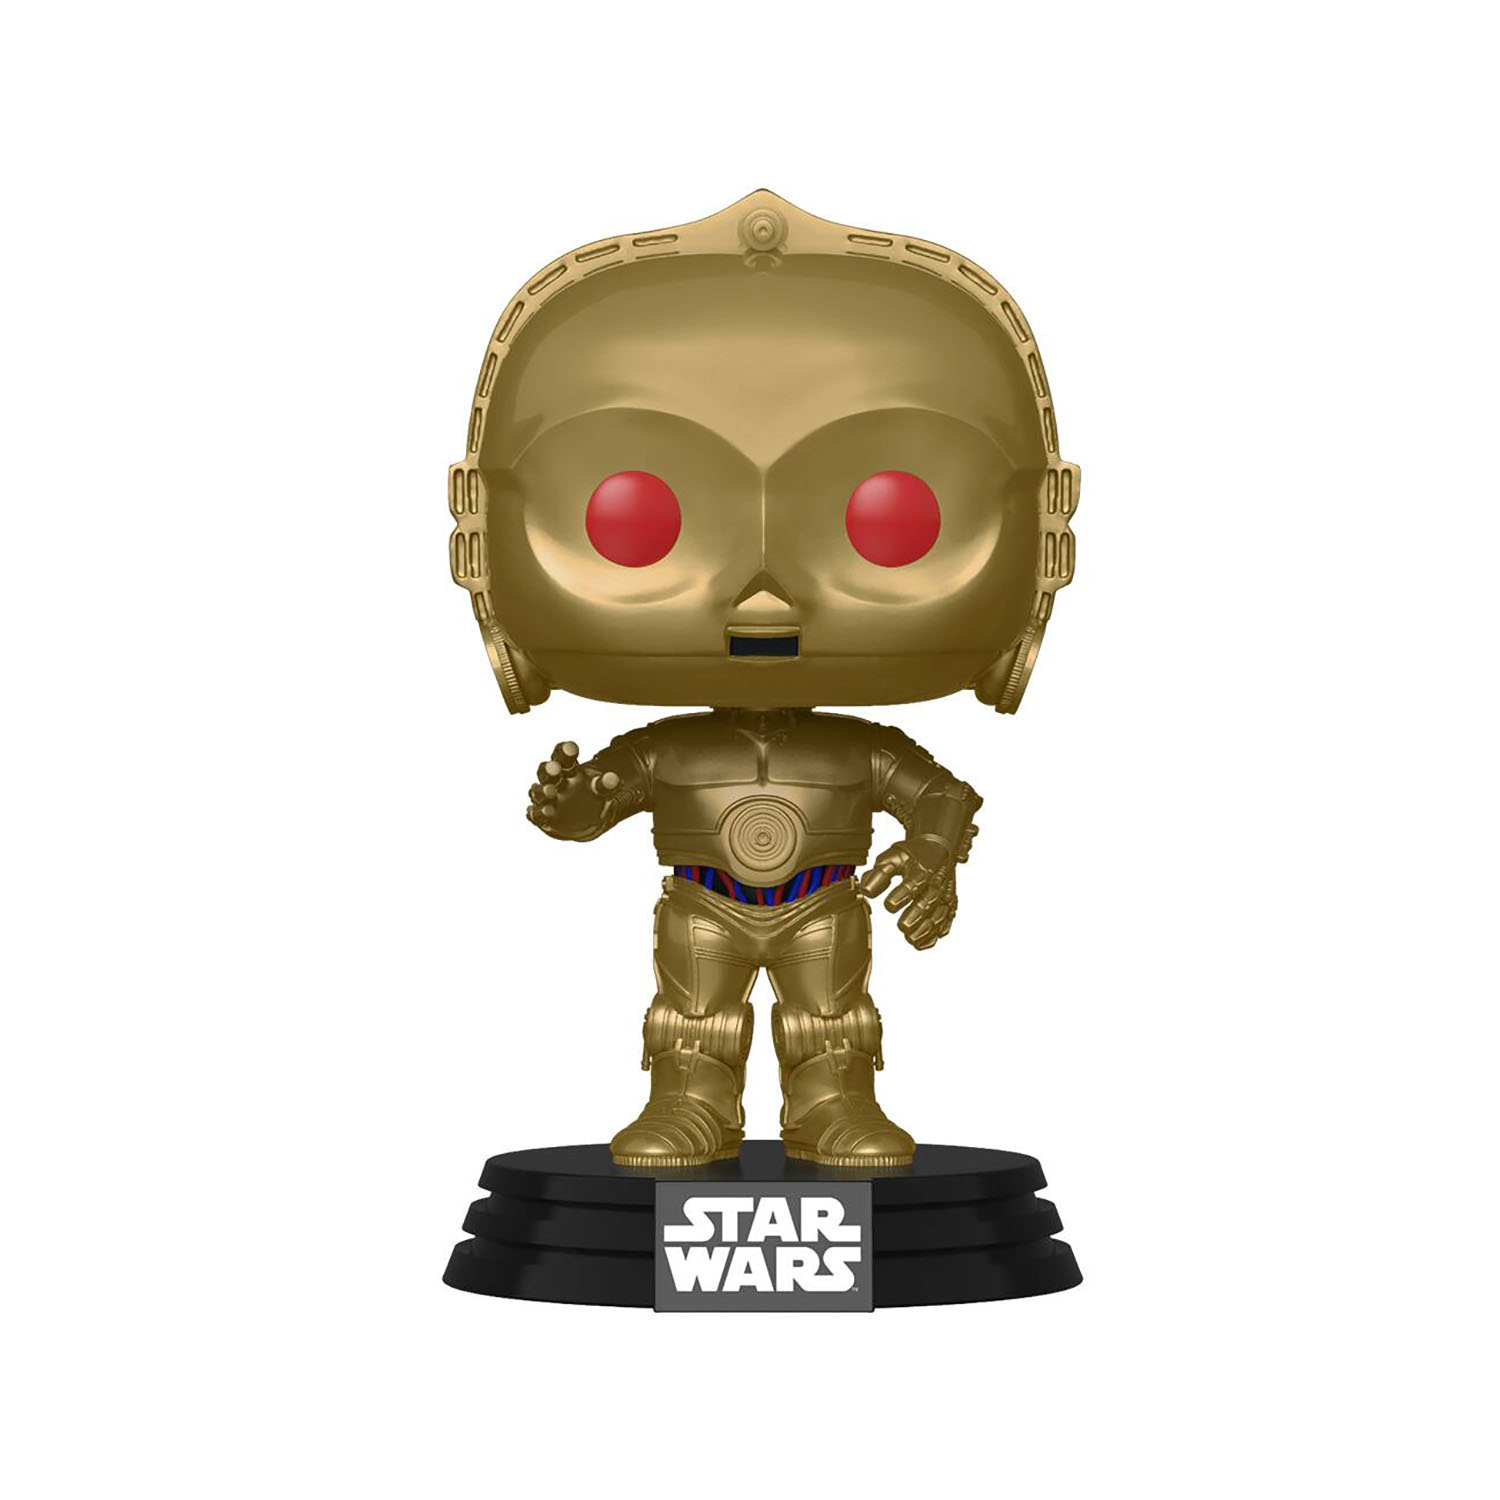 TROS Dark Rey and C-3PO (Red Eyes) Bobble Head Toy 2-Pack 5